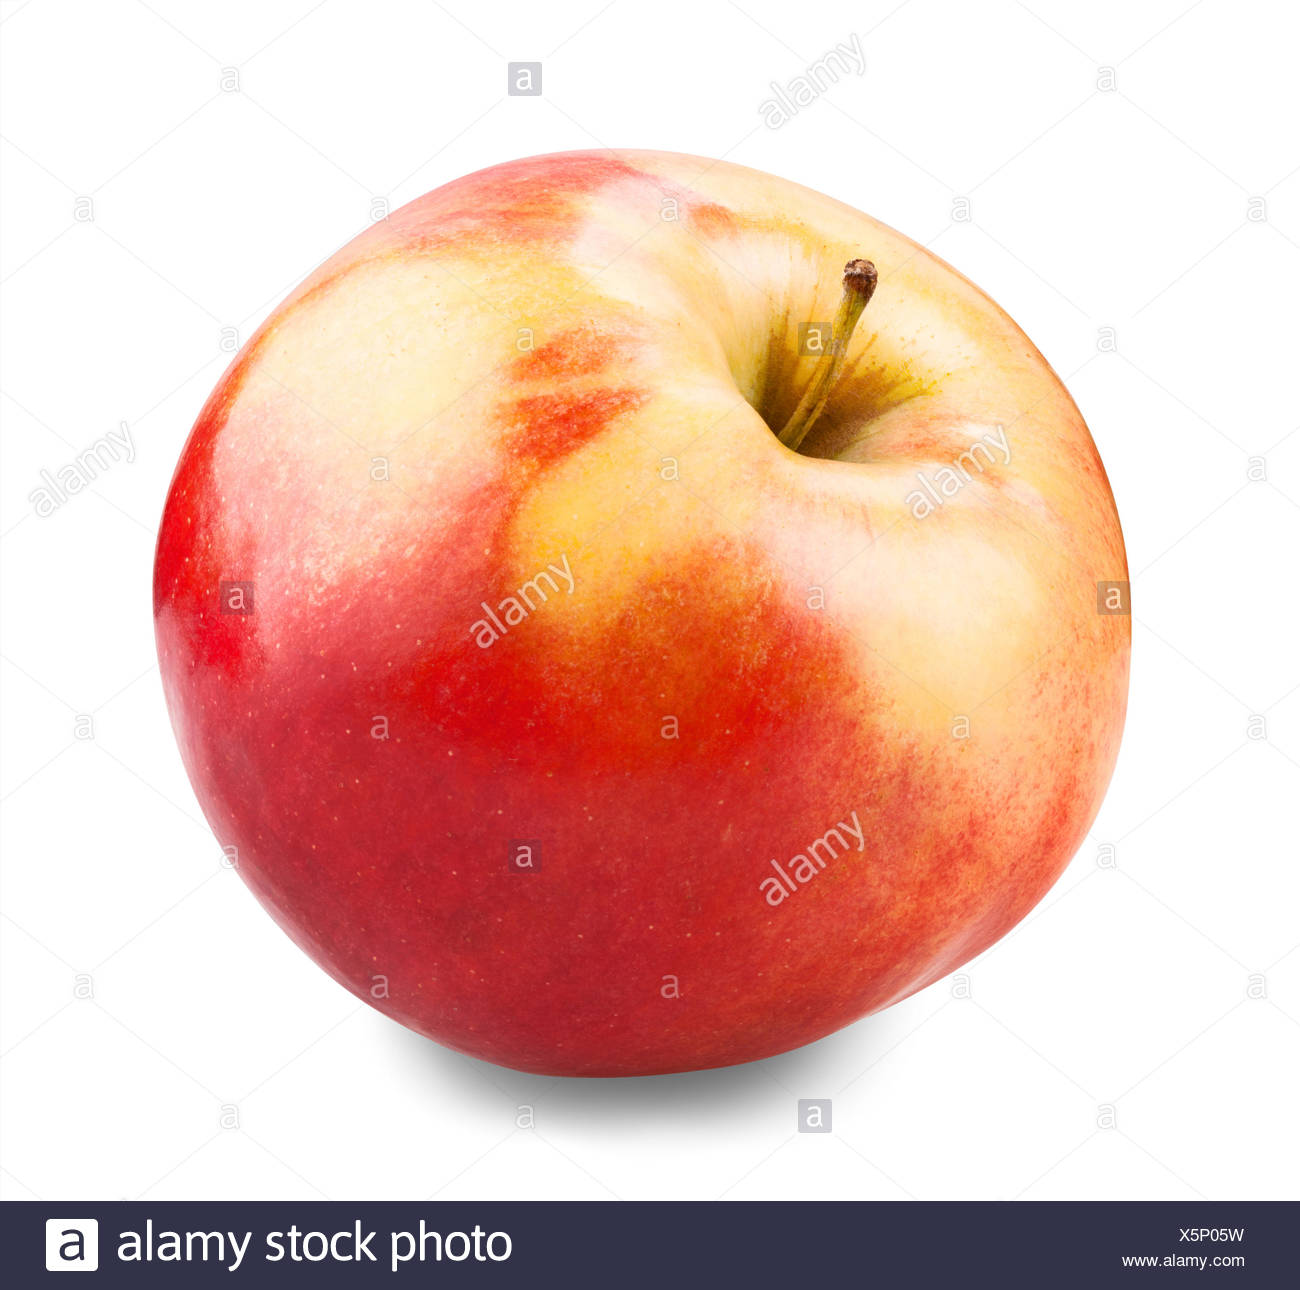 juicy red apple - Stock Image